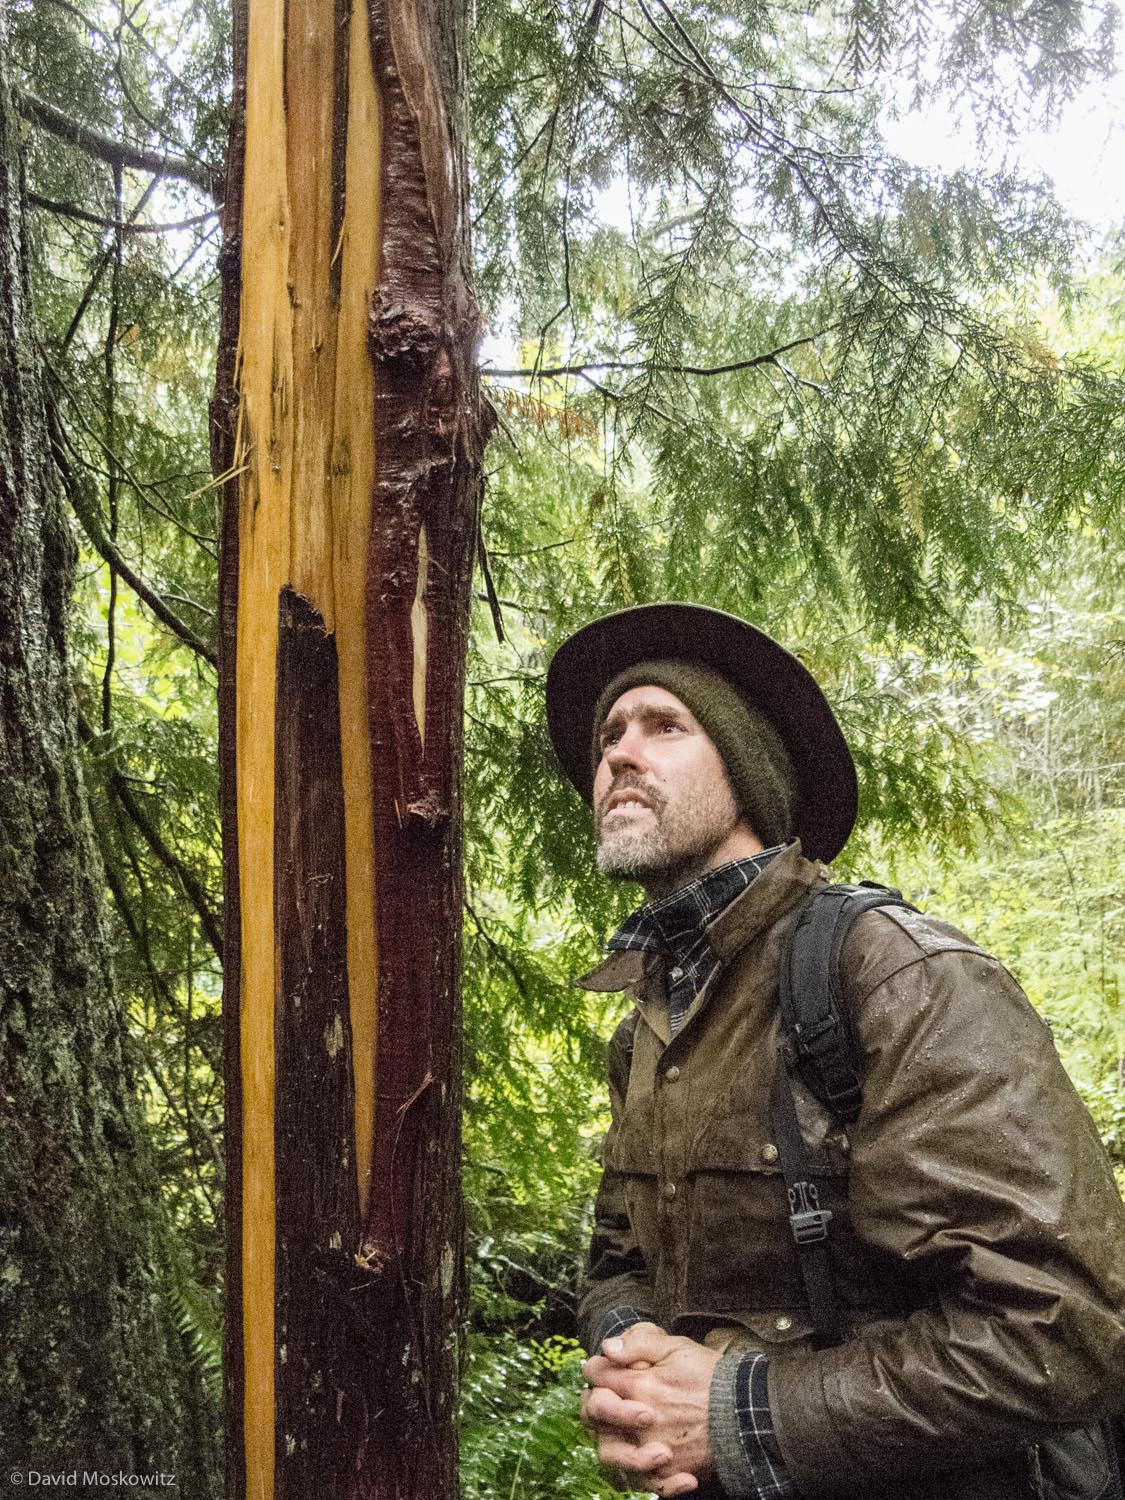 Garth Oldman inspects the work of a black bear who bit and ripped the bark off of this western red cedar tree. Such activity is typical scent marking behavior of bears. Oregon Coast Range.